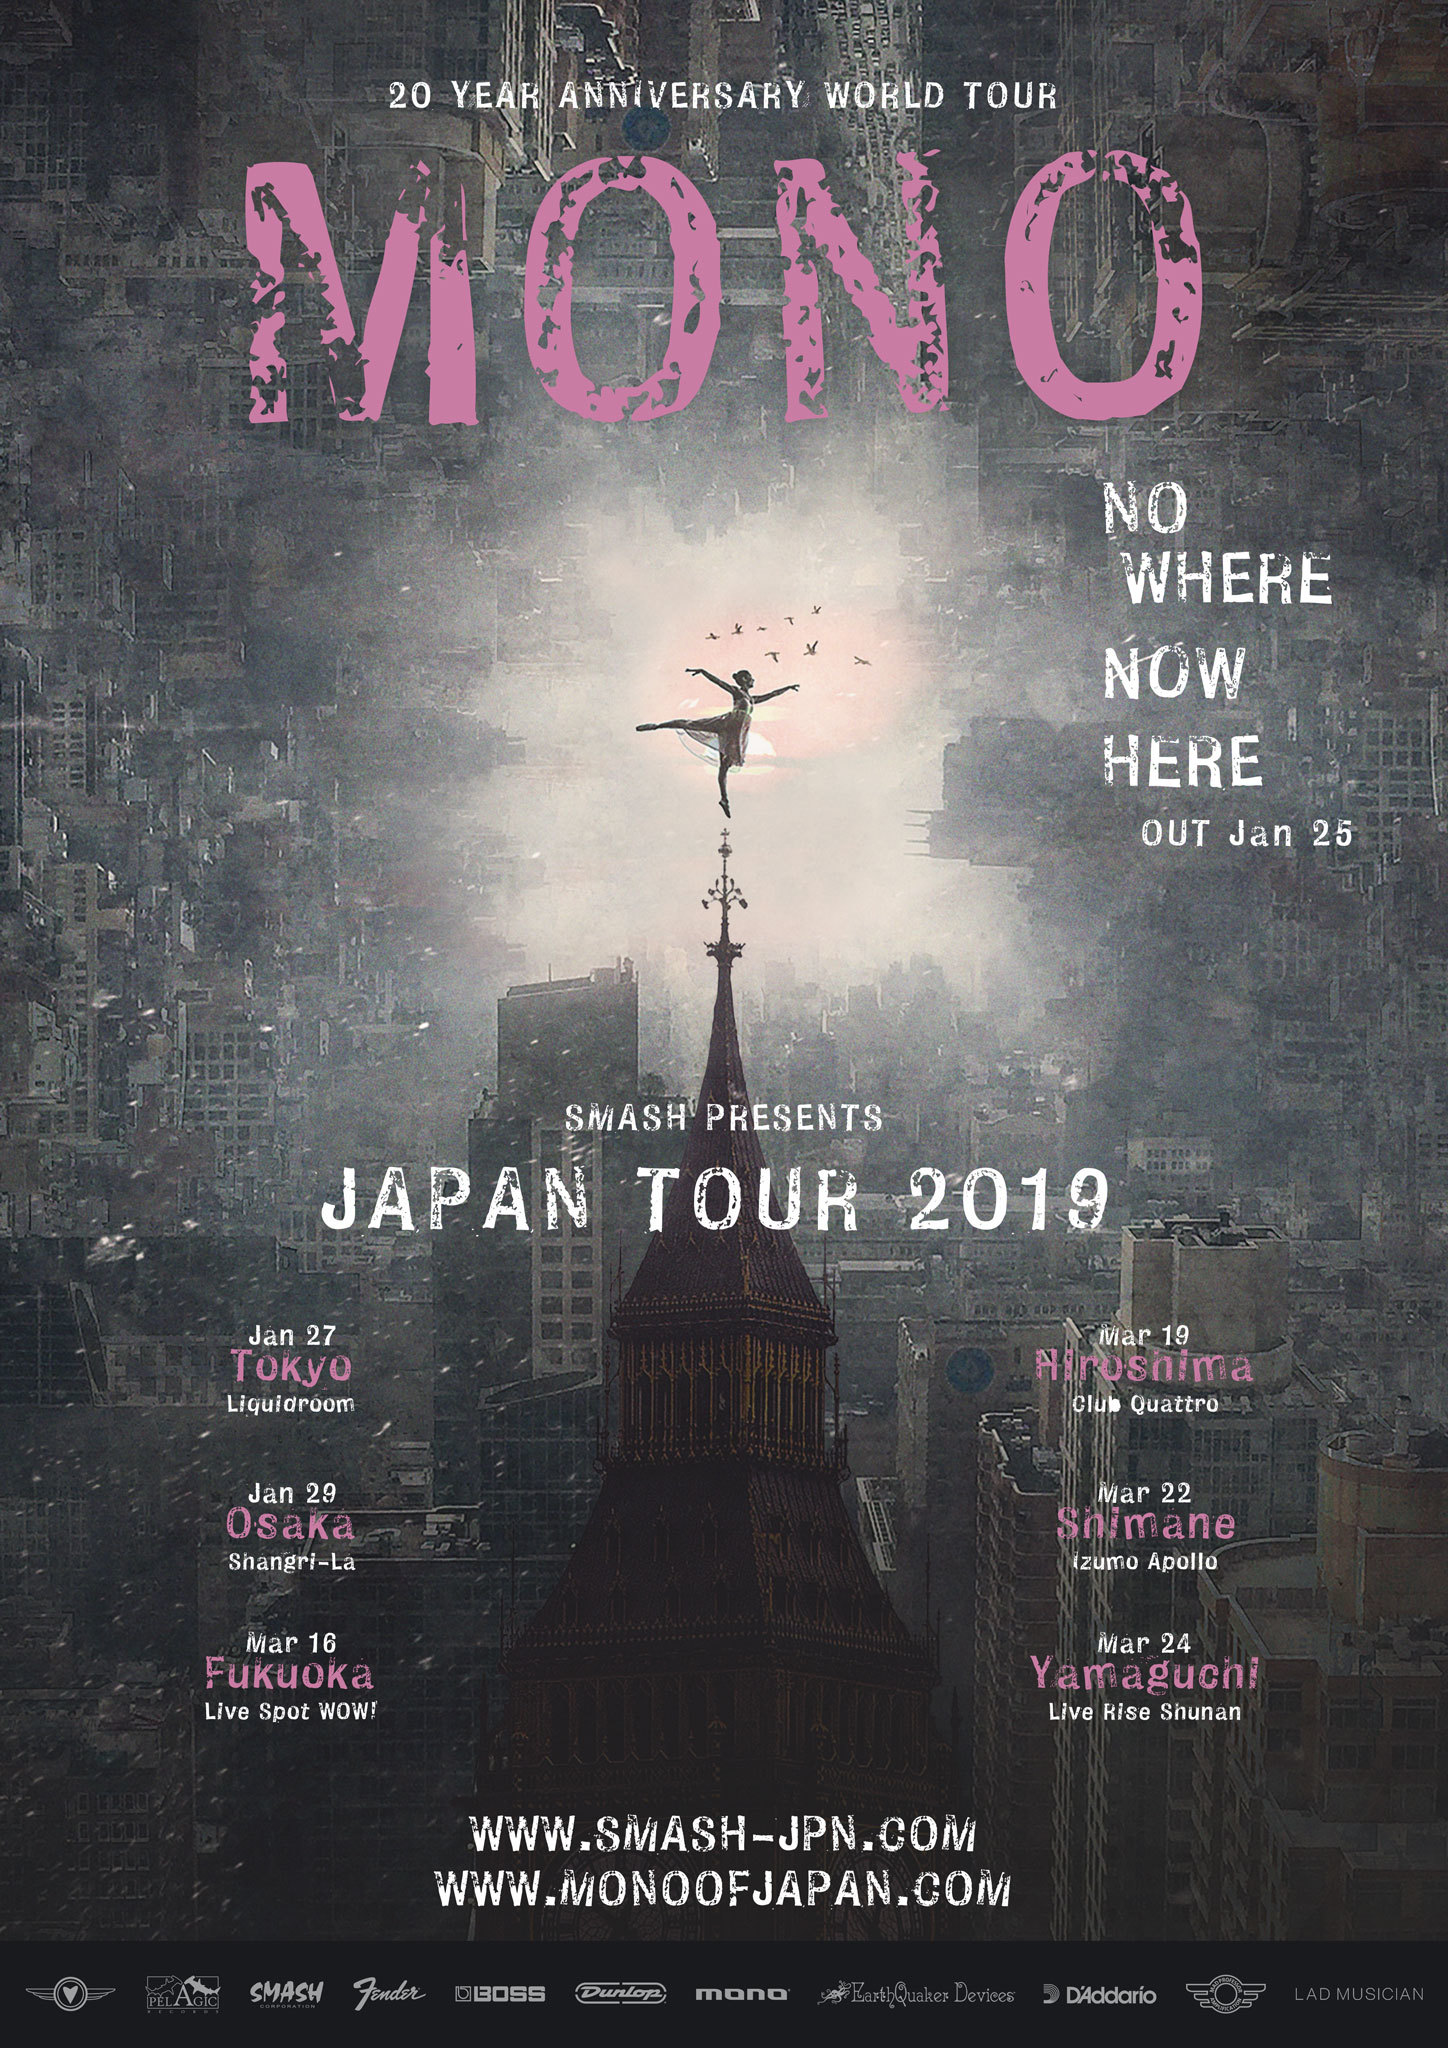 『MONO 20 Year Anniversary Japan Tour 2019』